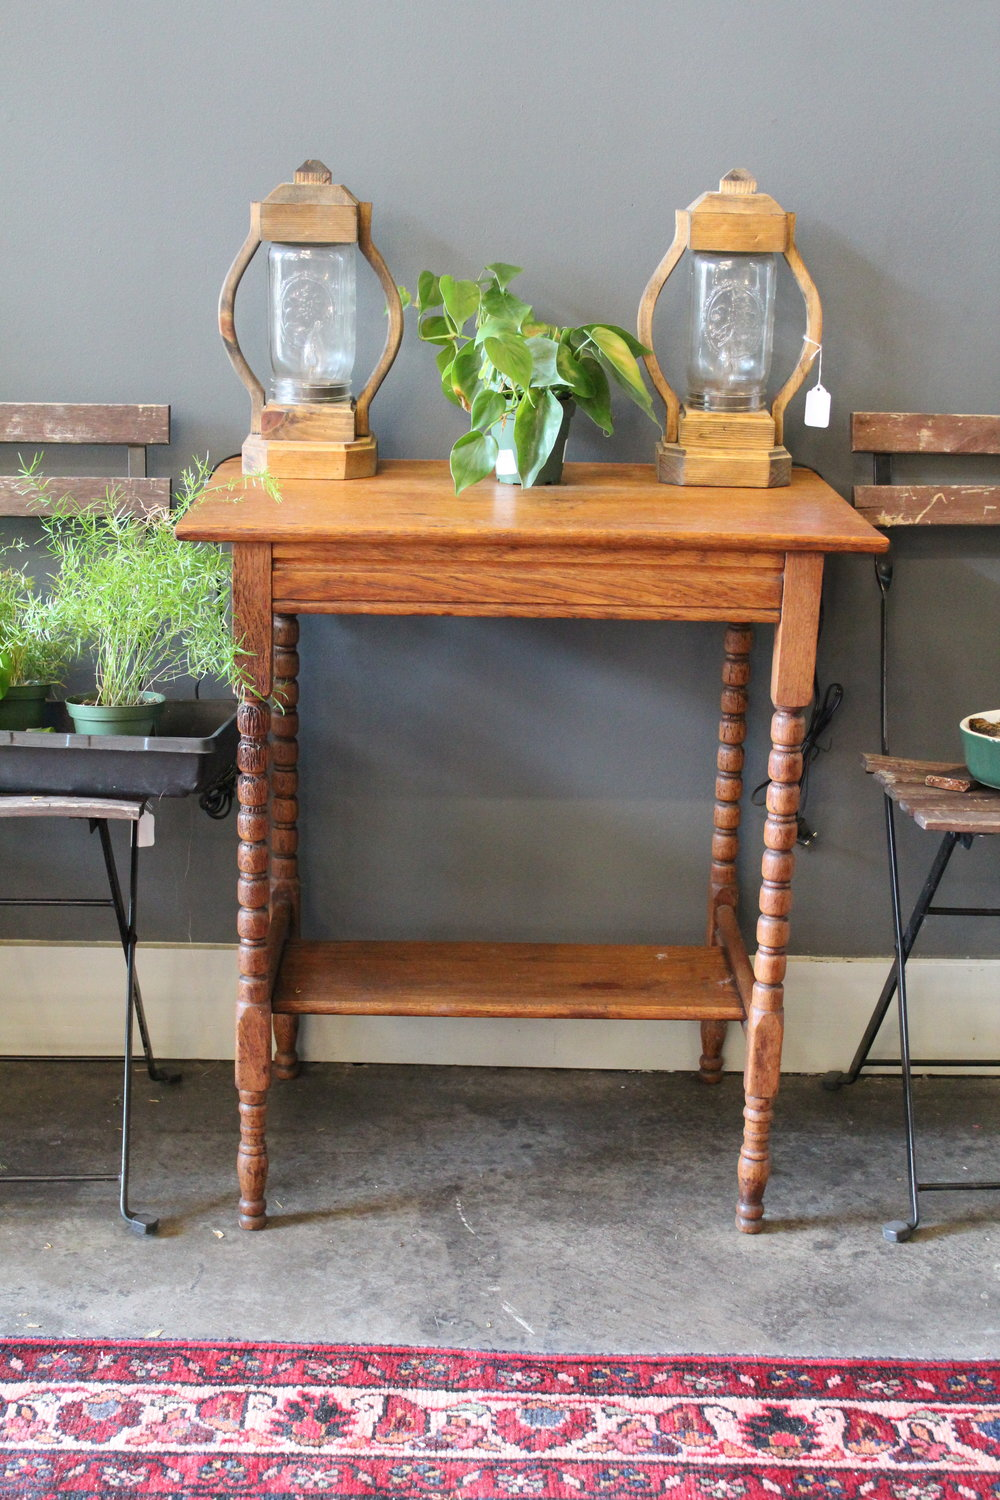 Wooden Side Table and Mason Jar Lanterns